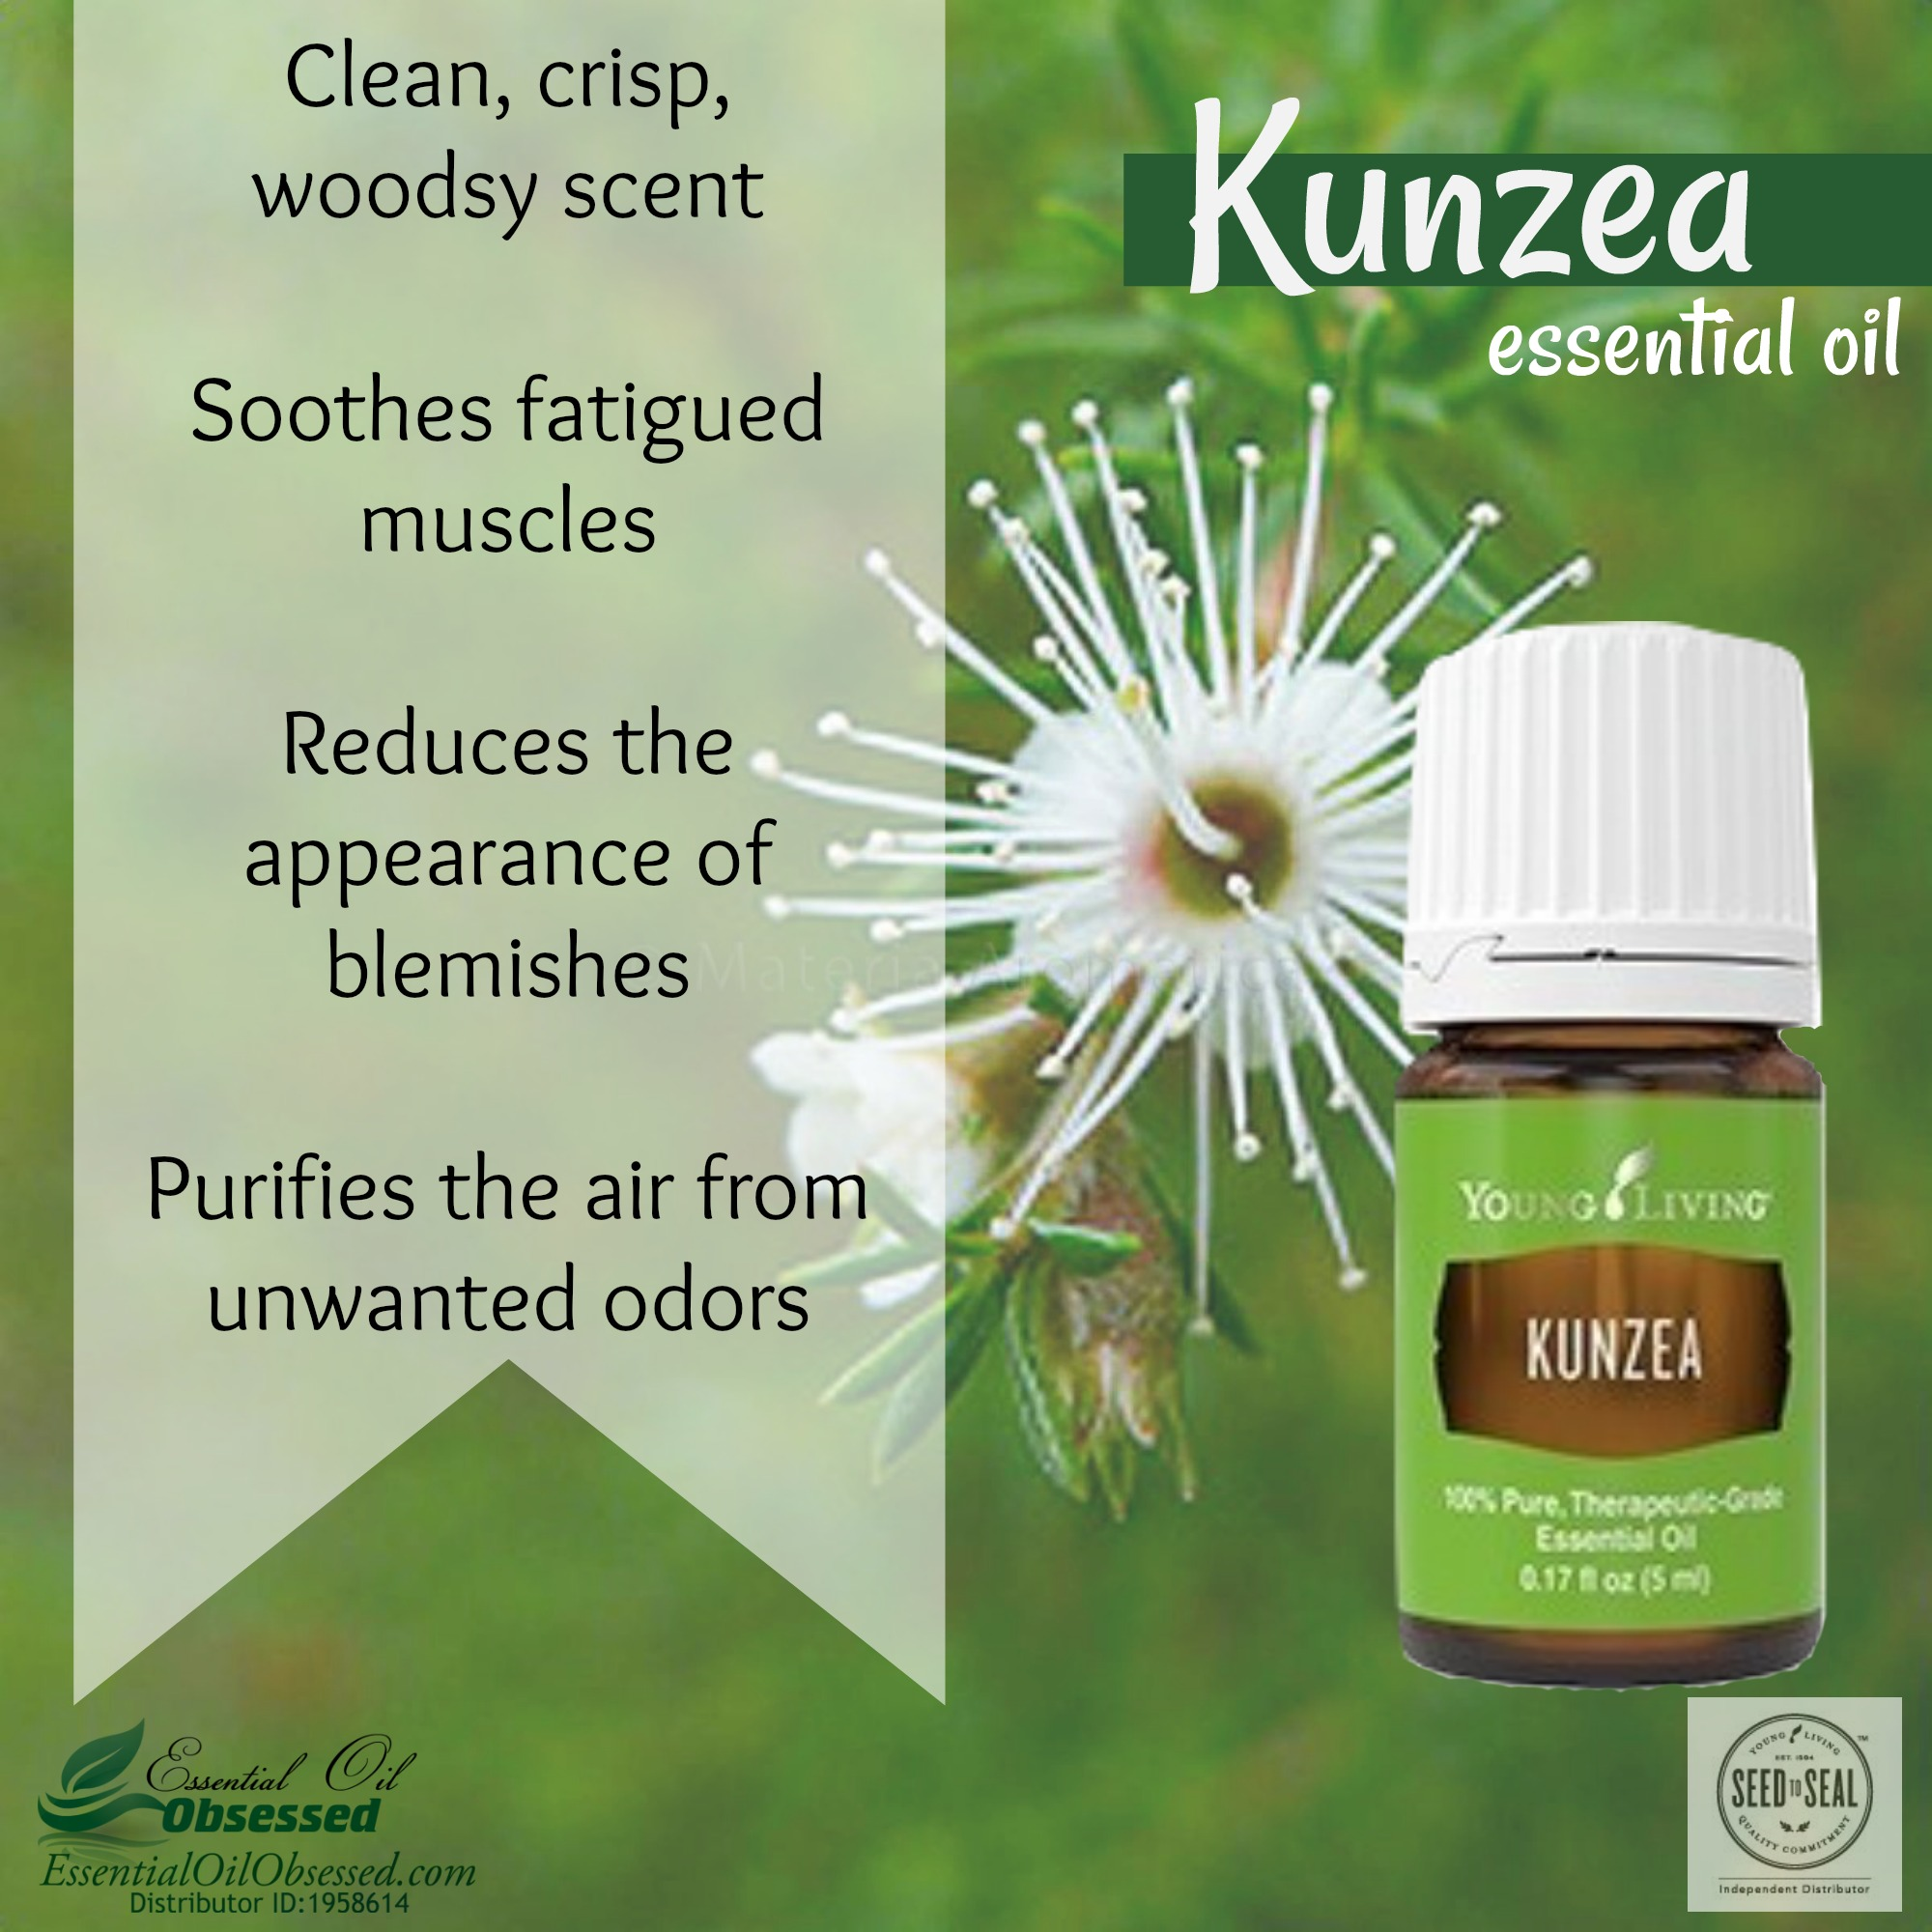 Kunzea essential oil from Young Living